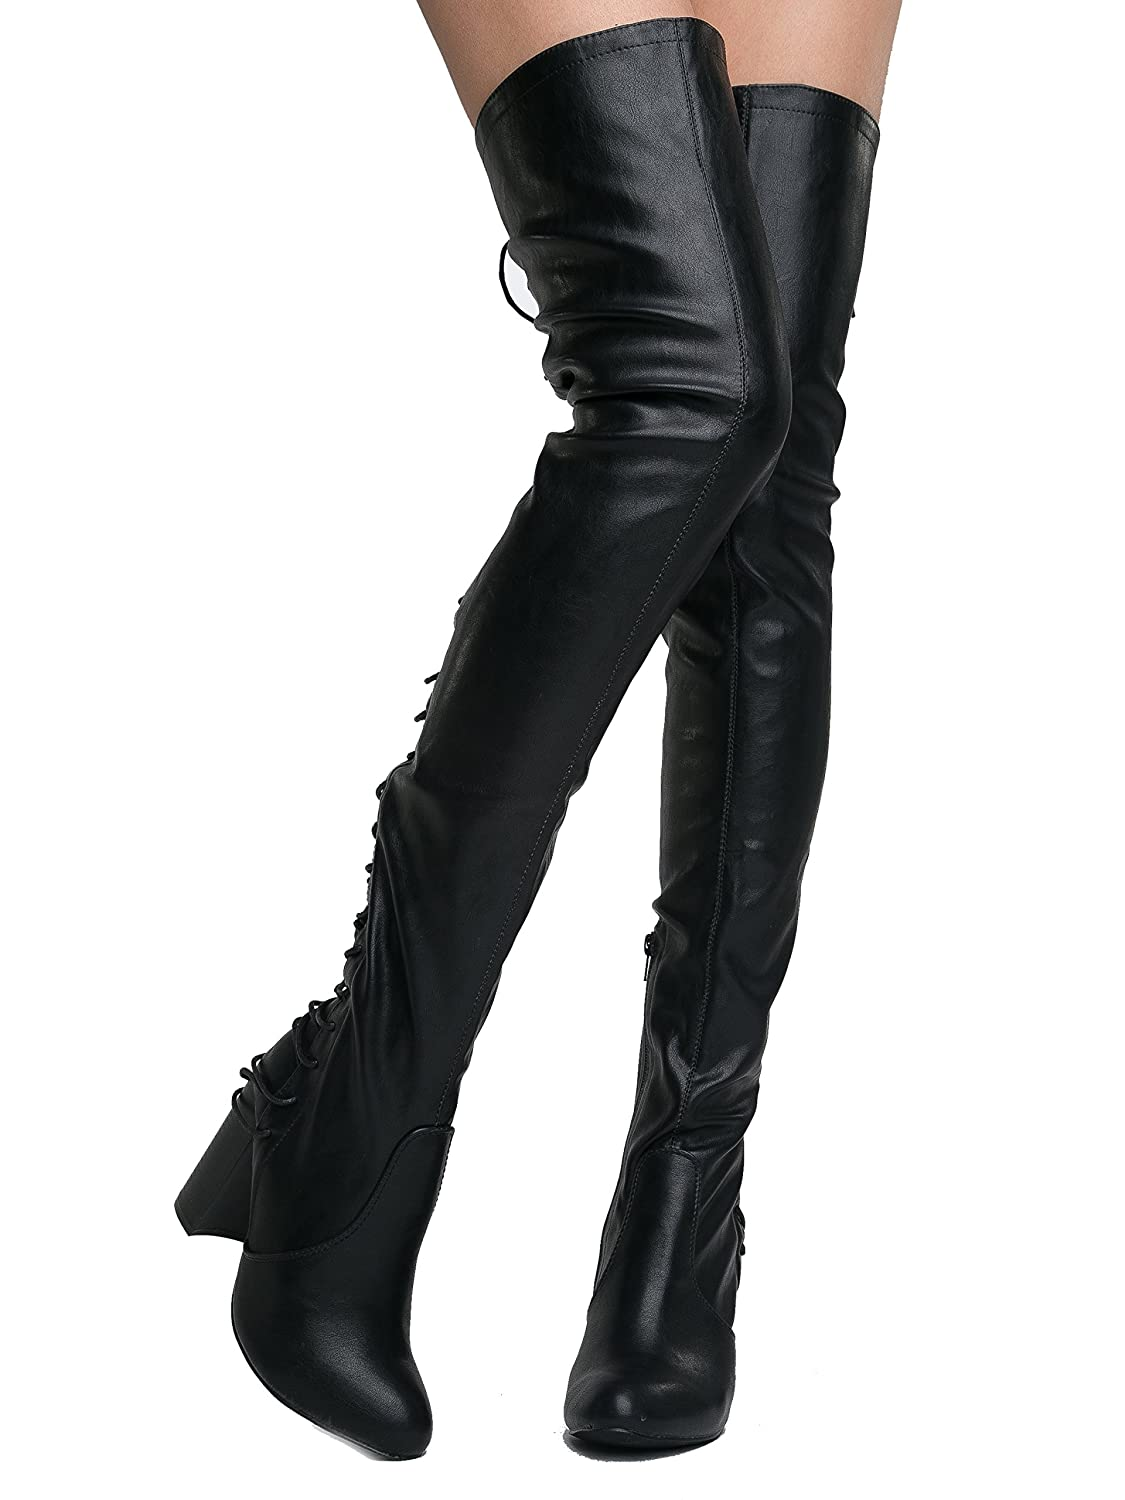 21843cf21f8f Amazon.com | J. Adams Koko Thigh High - High Heel Shoe - Gorgeous Lace up  Over The Knee Boot | Over-the-Knee